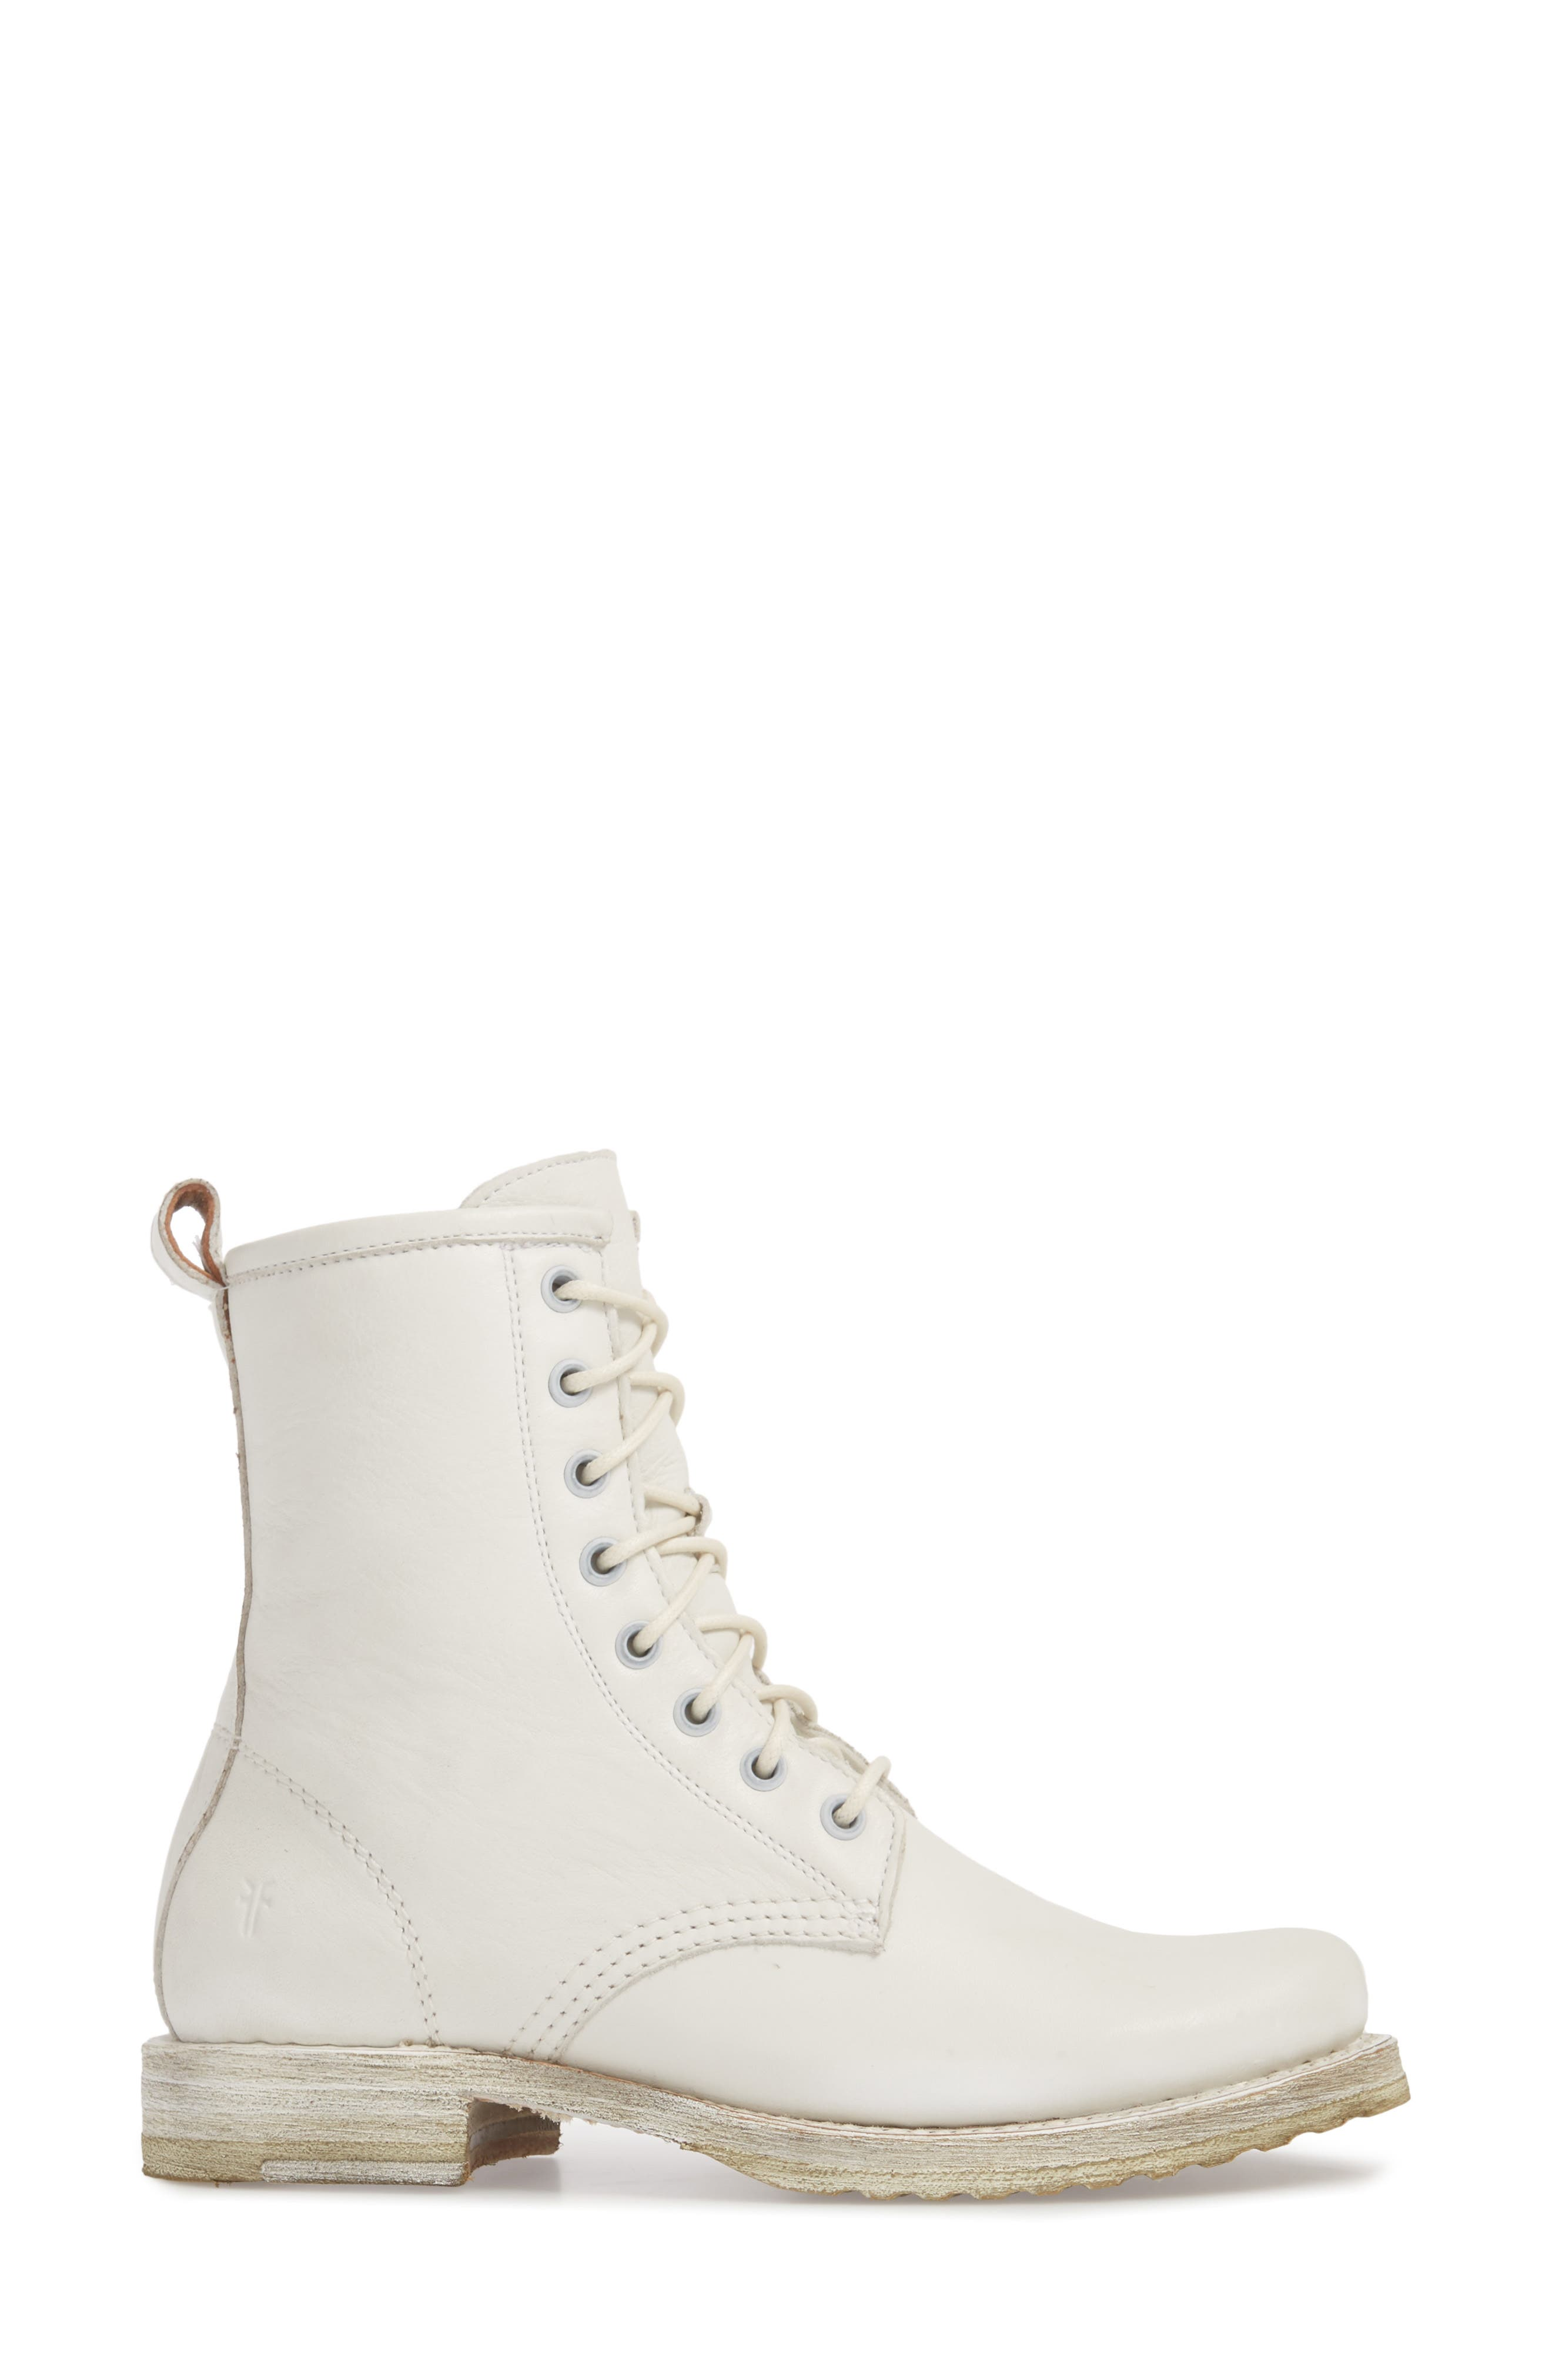 'Veronica Combat' Boot,                             Alternate thumbnail 3, color,                             WHITE LEATHER